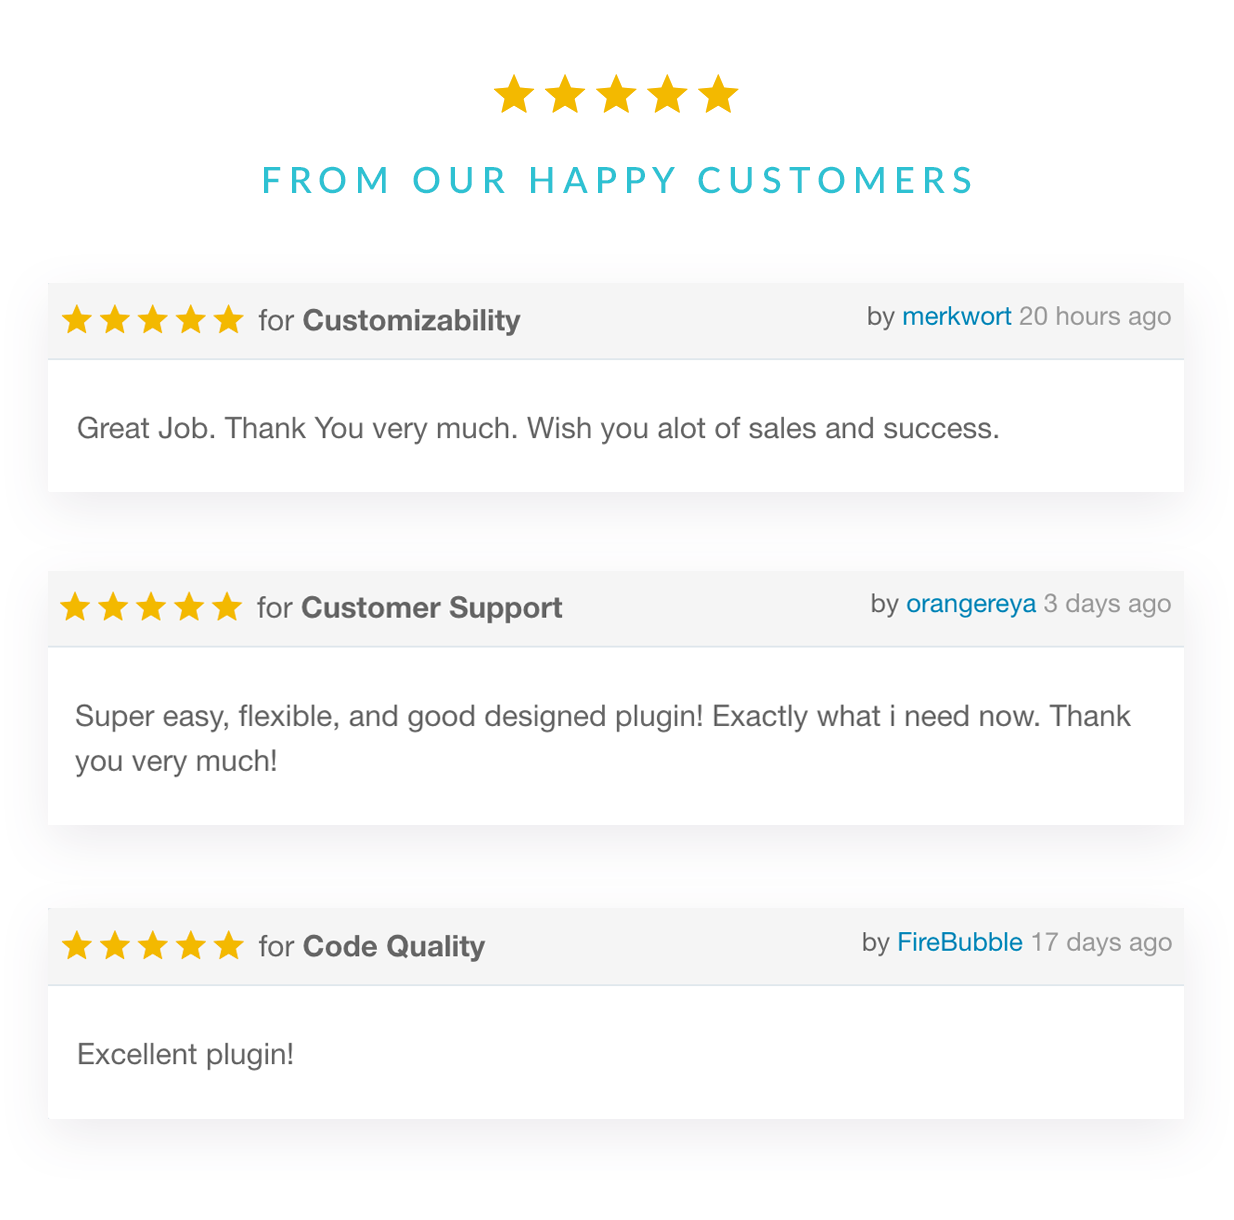 Five star ratings from our happy customers